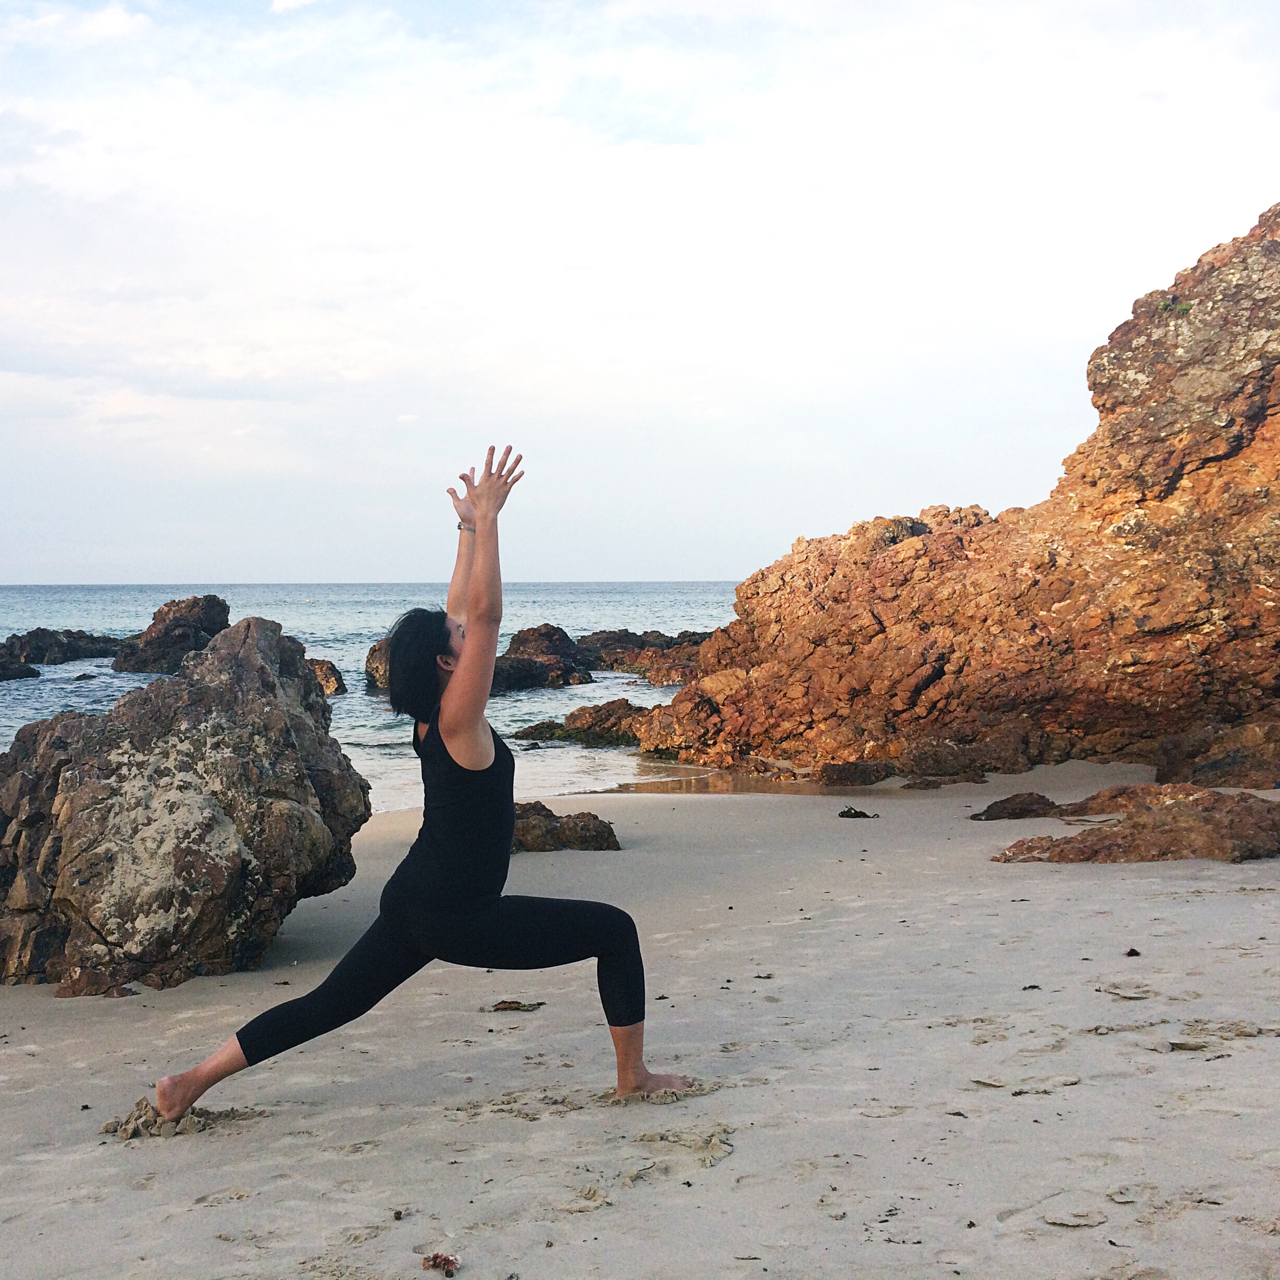 Classes - Yoga classes in the Ryde area